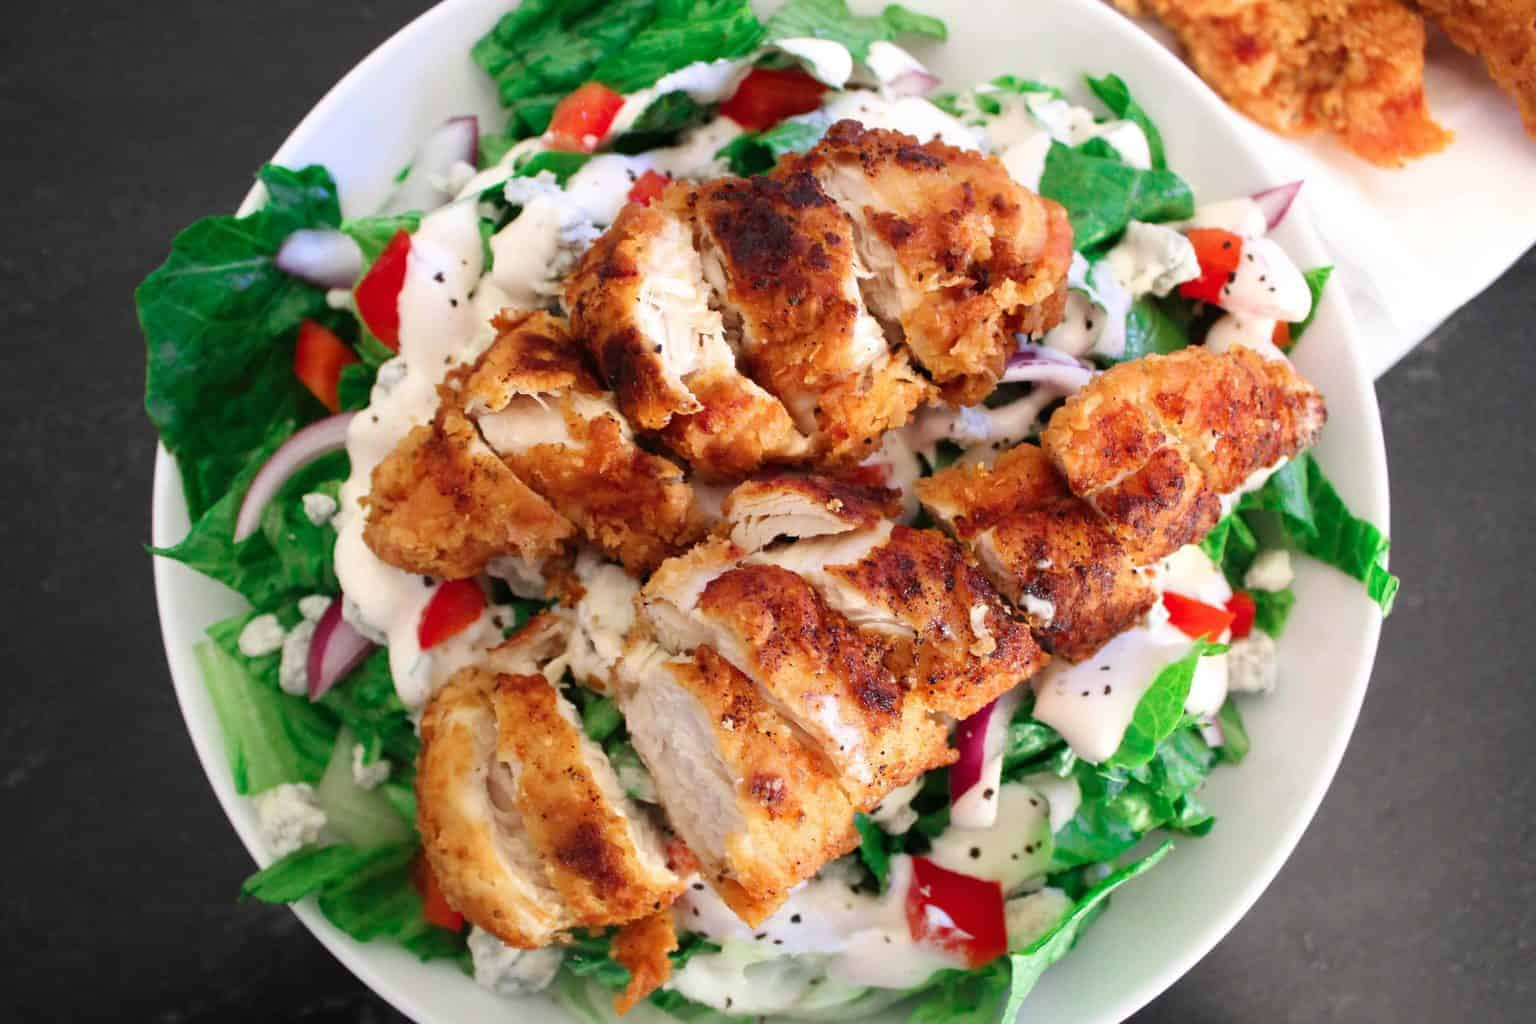 Fried Chicken Tenders Salad in a white bowl